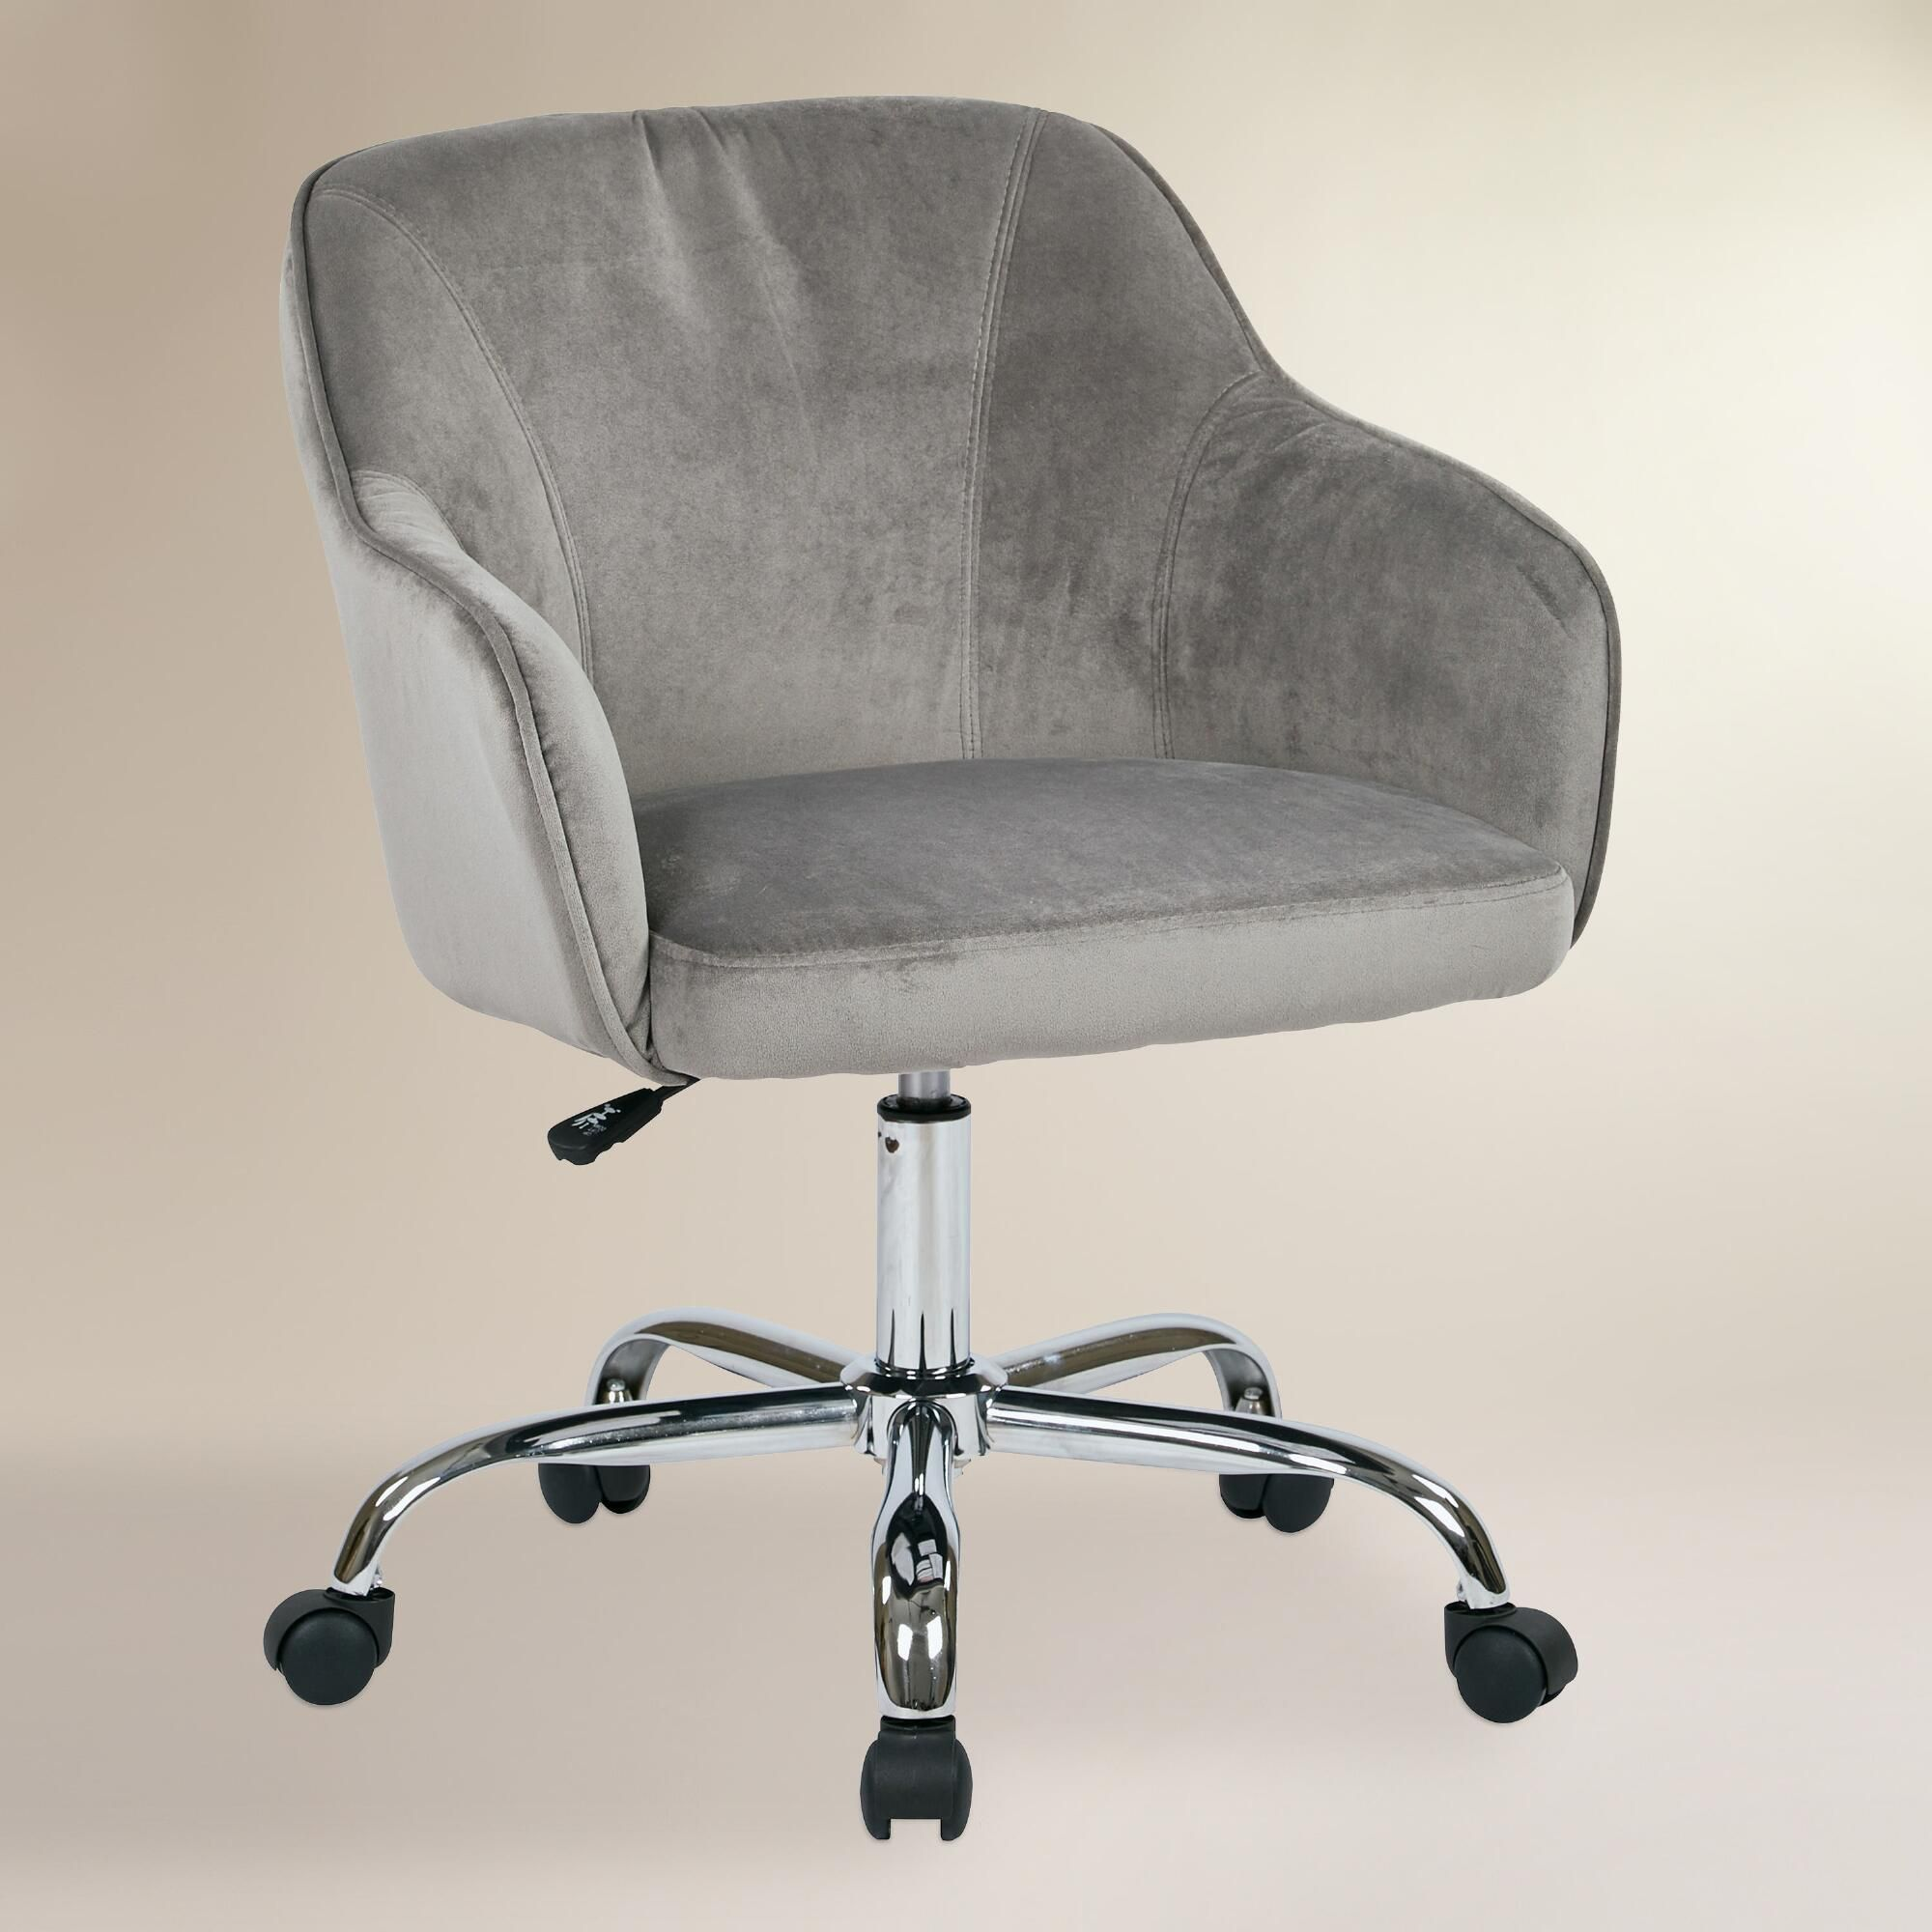 Fabric Office Chairs With Arms And Wheels The Best Option For You